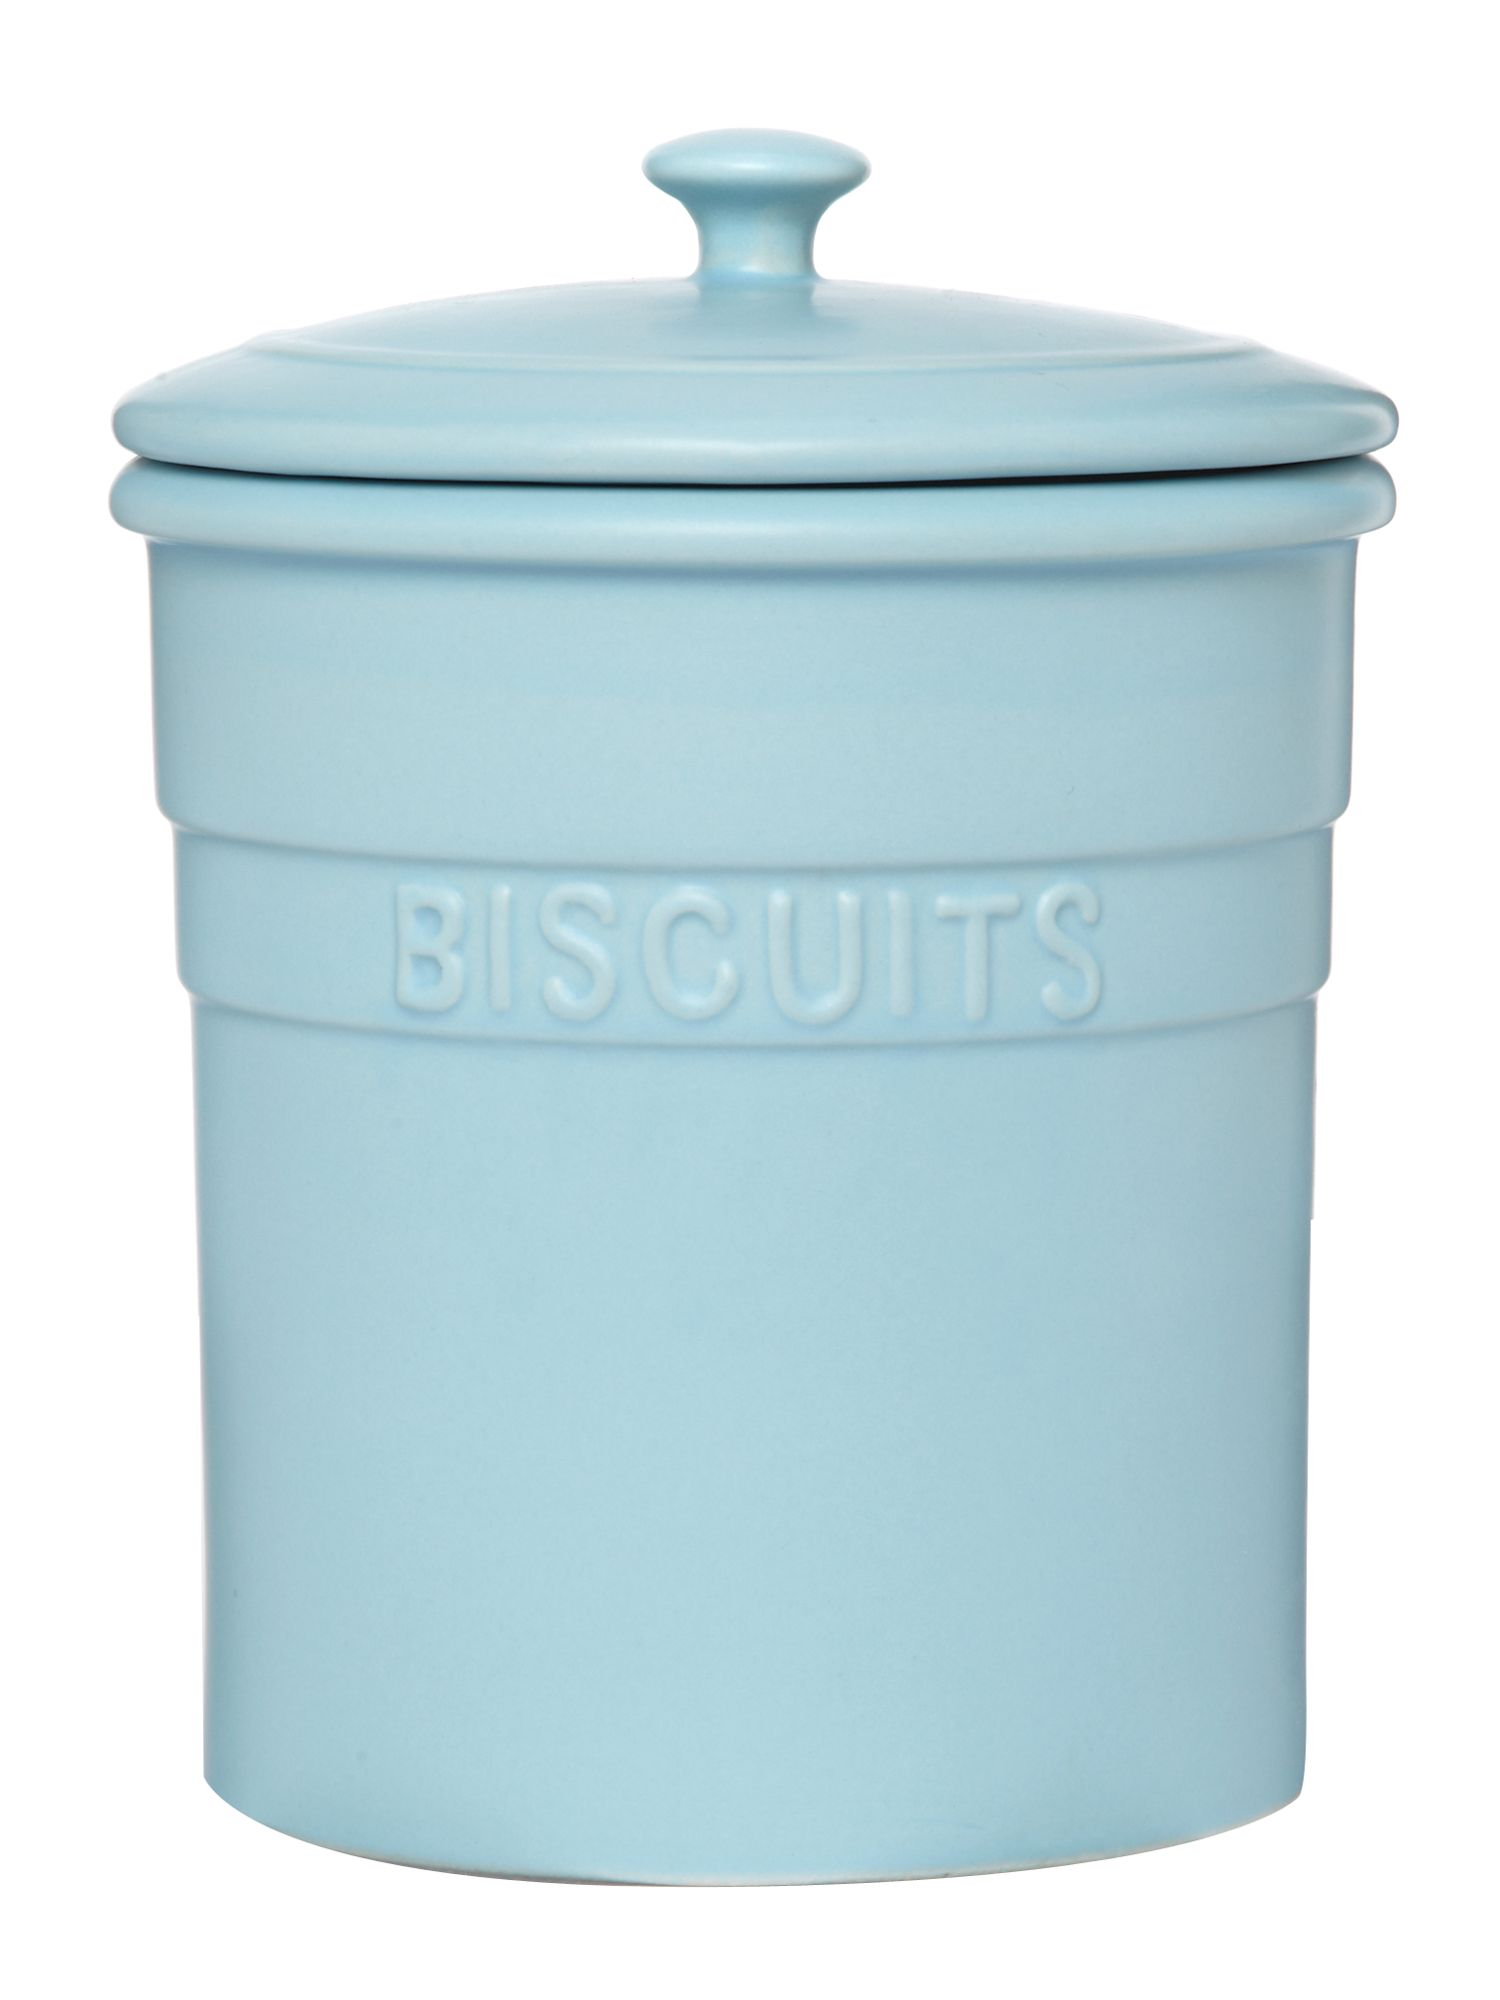 Maison biscuit jar, pale blue